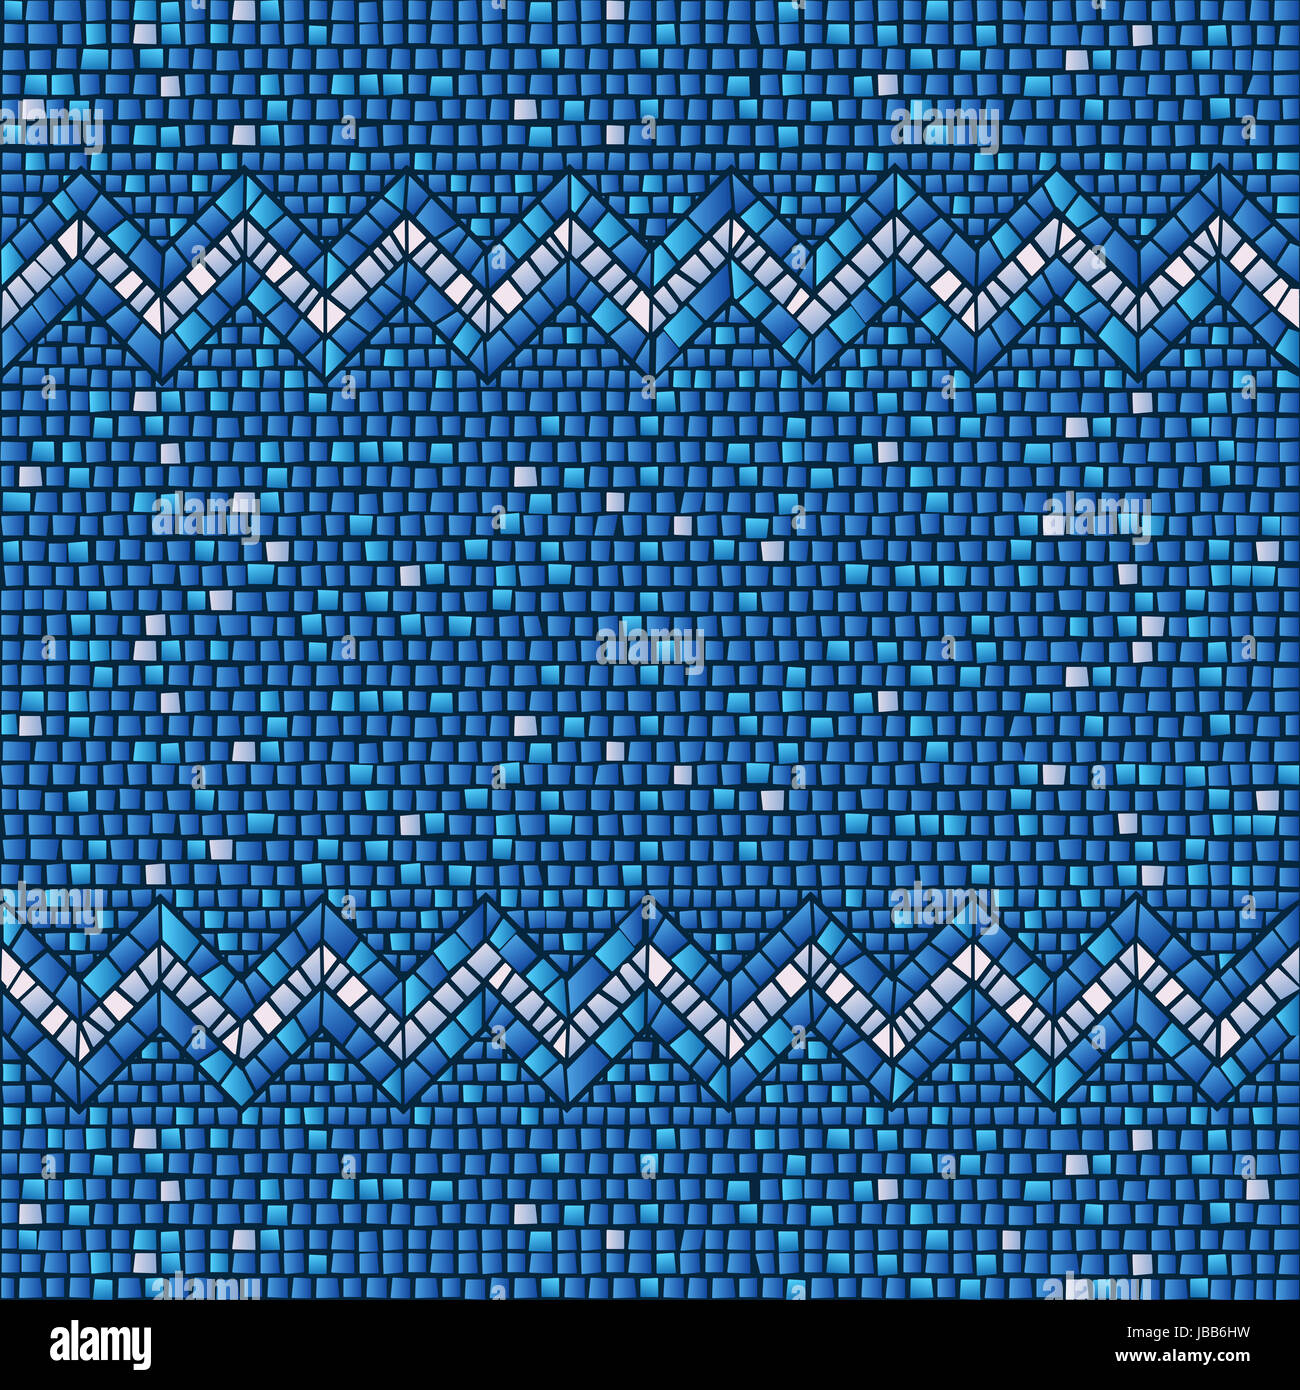 Blue ceramic tile mosaic seamless background pattern Stock Photo ...